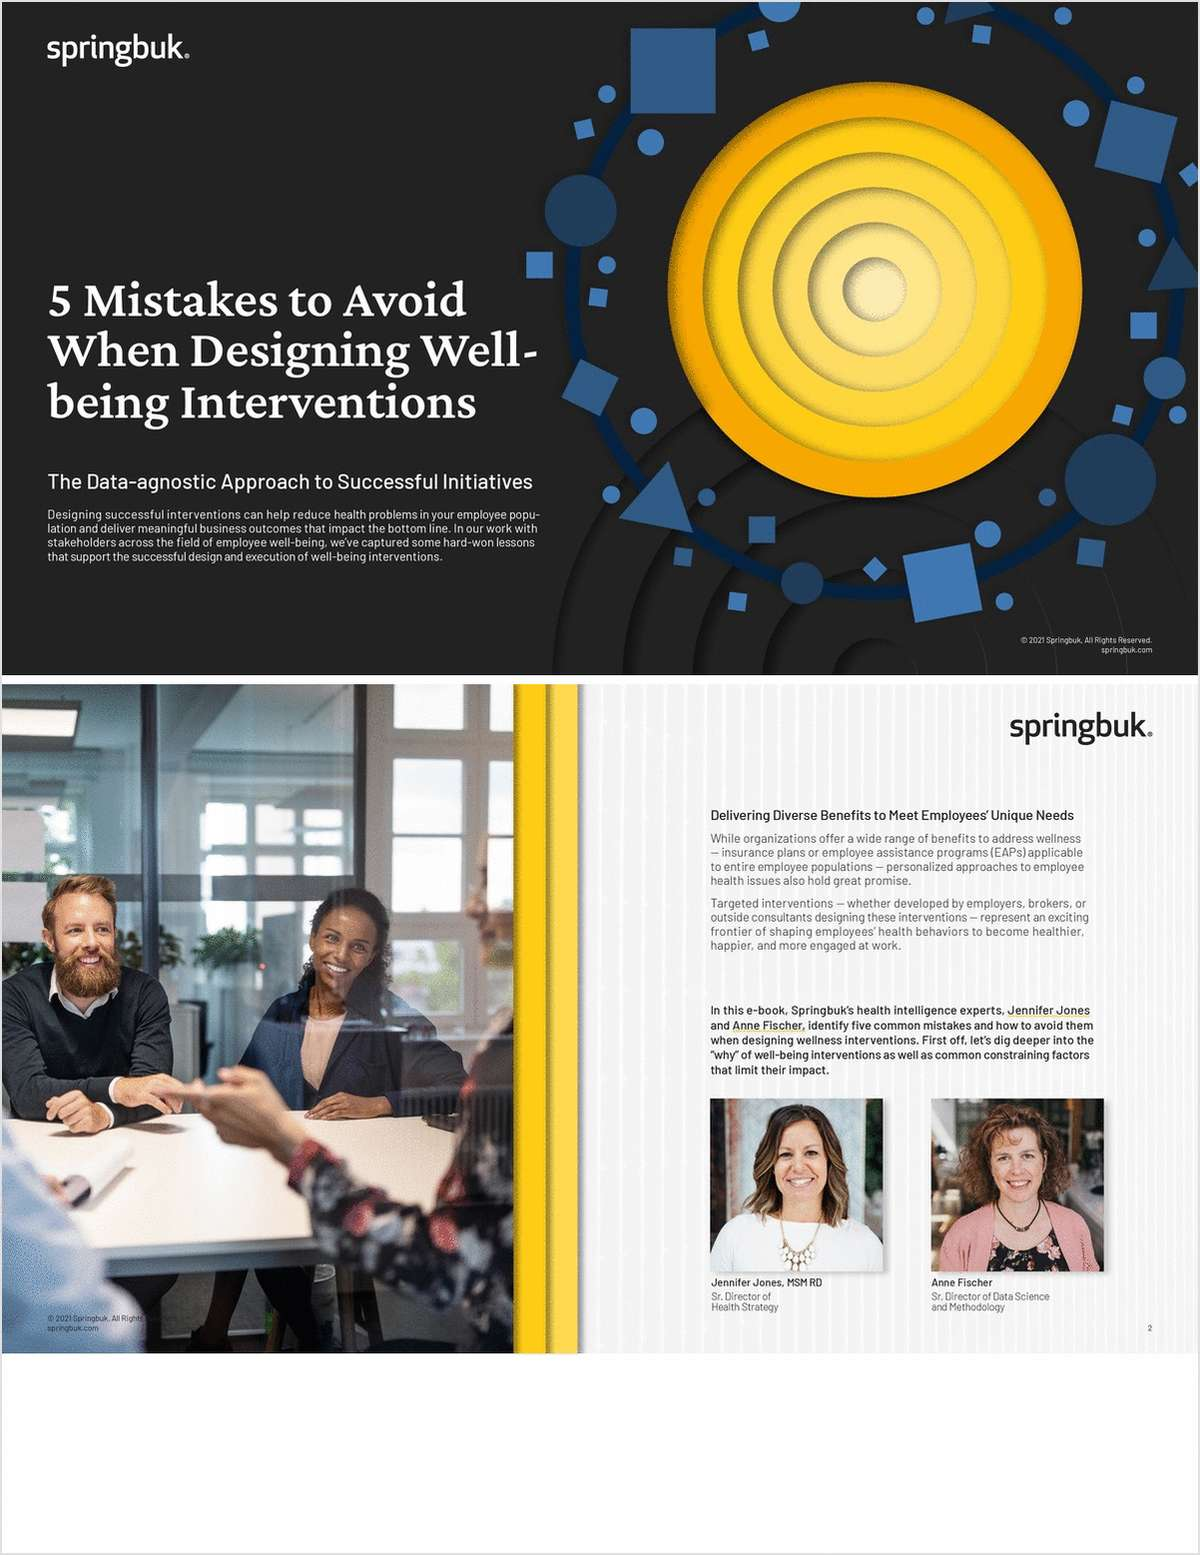 5 Mistakes to Avoid When Designing Well-Being Interventions